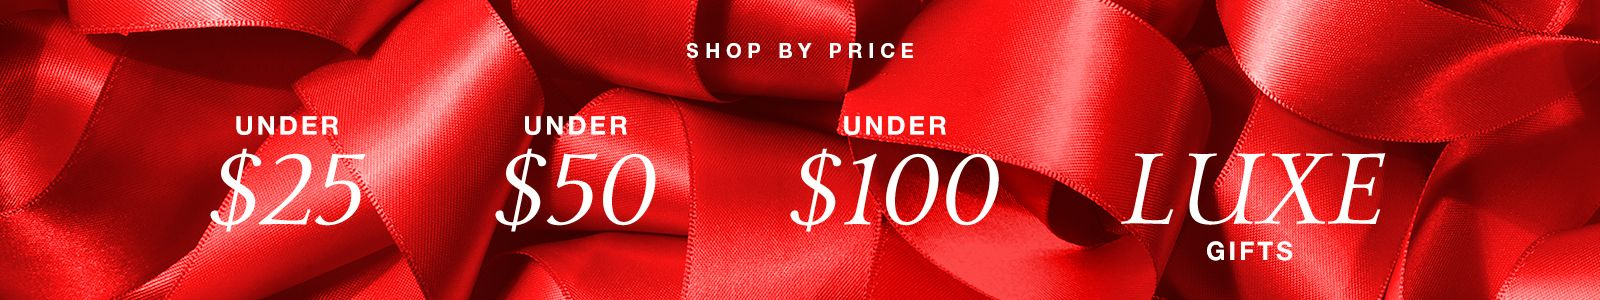 Shop By Price, Under $25, Under $50, Under $100, Luxe Gifts